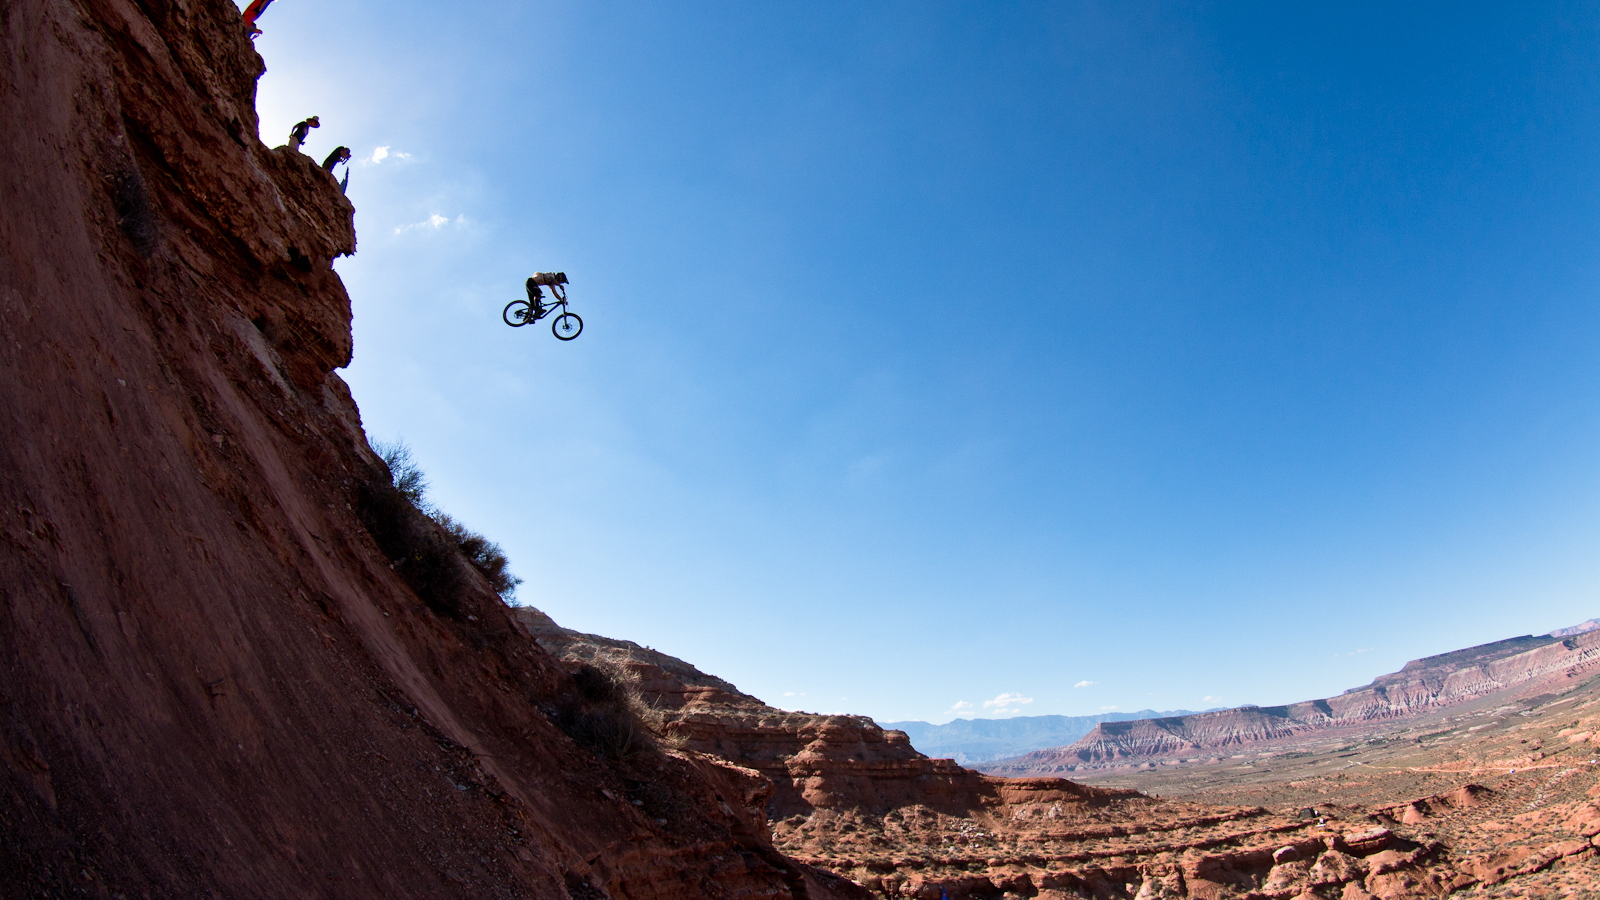 Aggy Goes Deep At Rampage With 76 Foot Drop Mountain